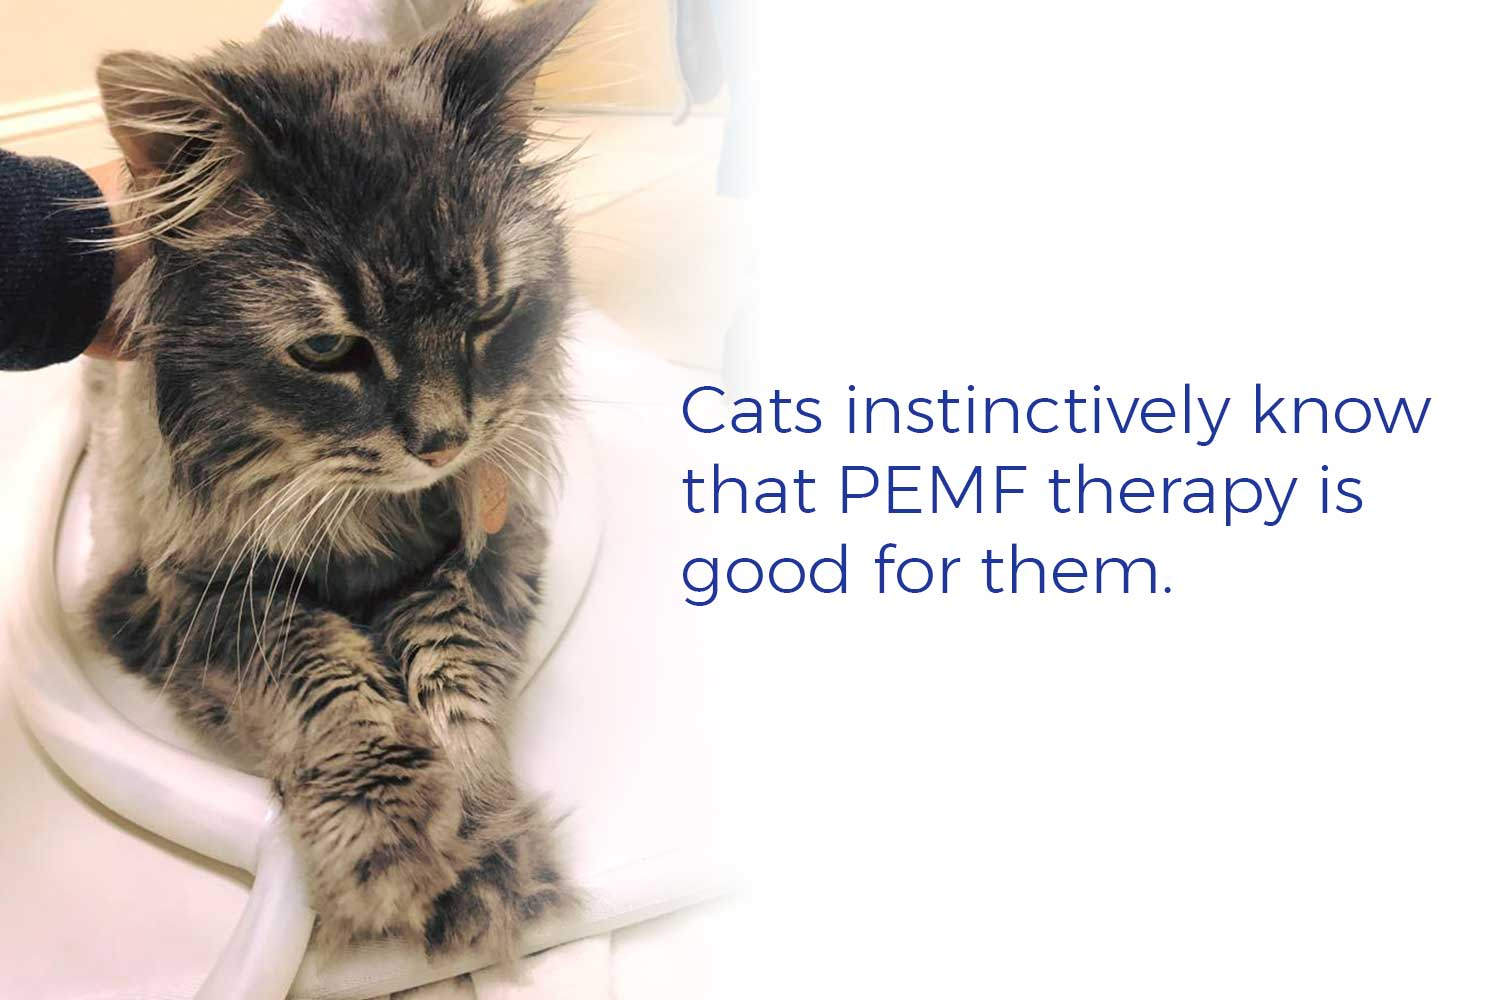 Cats instinctively know that PEMF therapy is good for them.